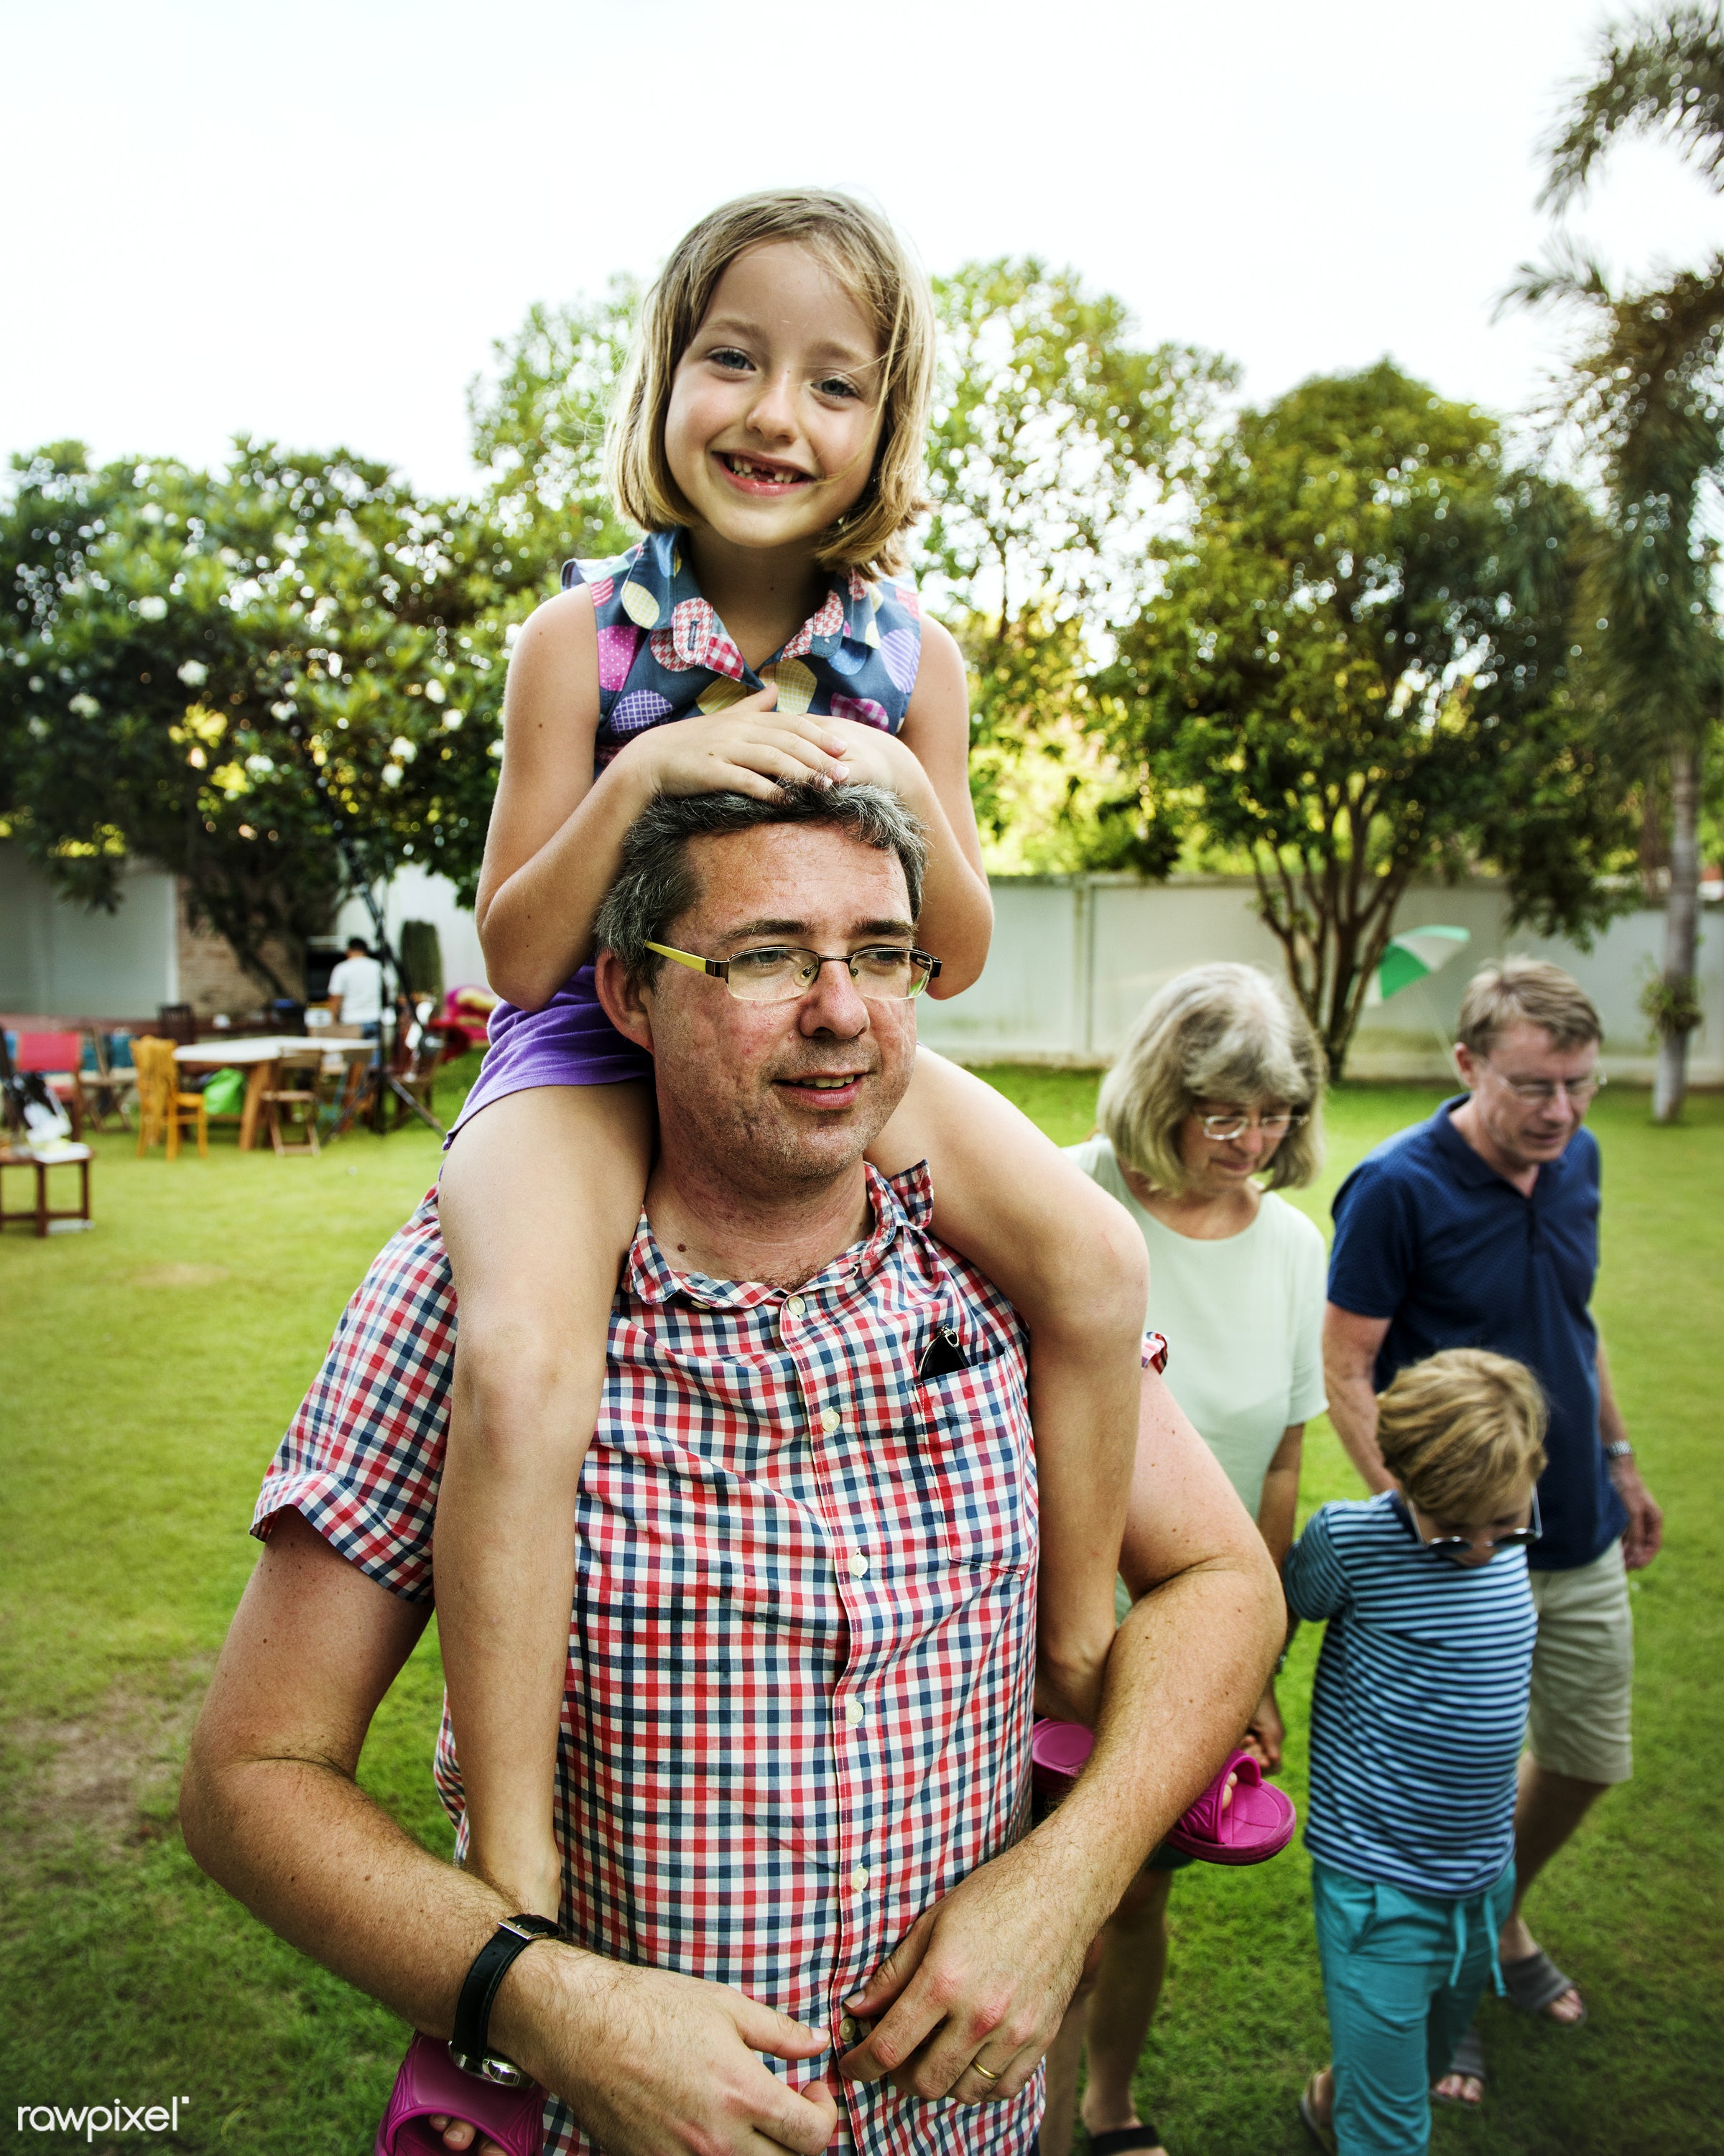 home, parents, yard, grandfather, daughter, piggy back ride, niece, together, father, girl, family, casual, childhood,...